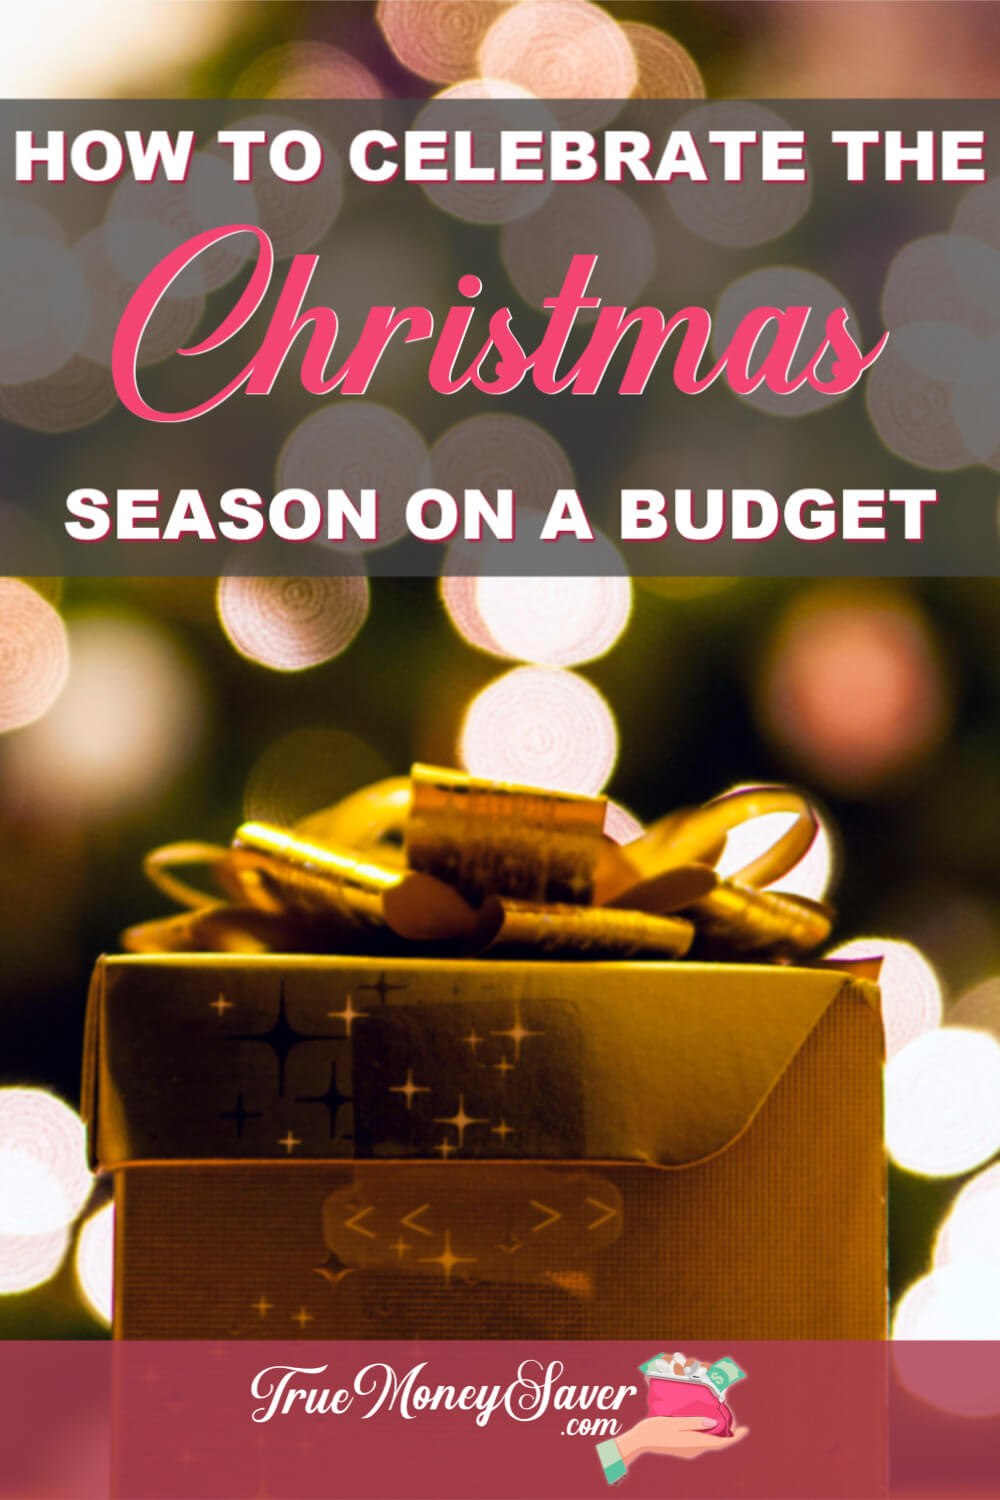 Your Christmas budget may be \